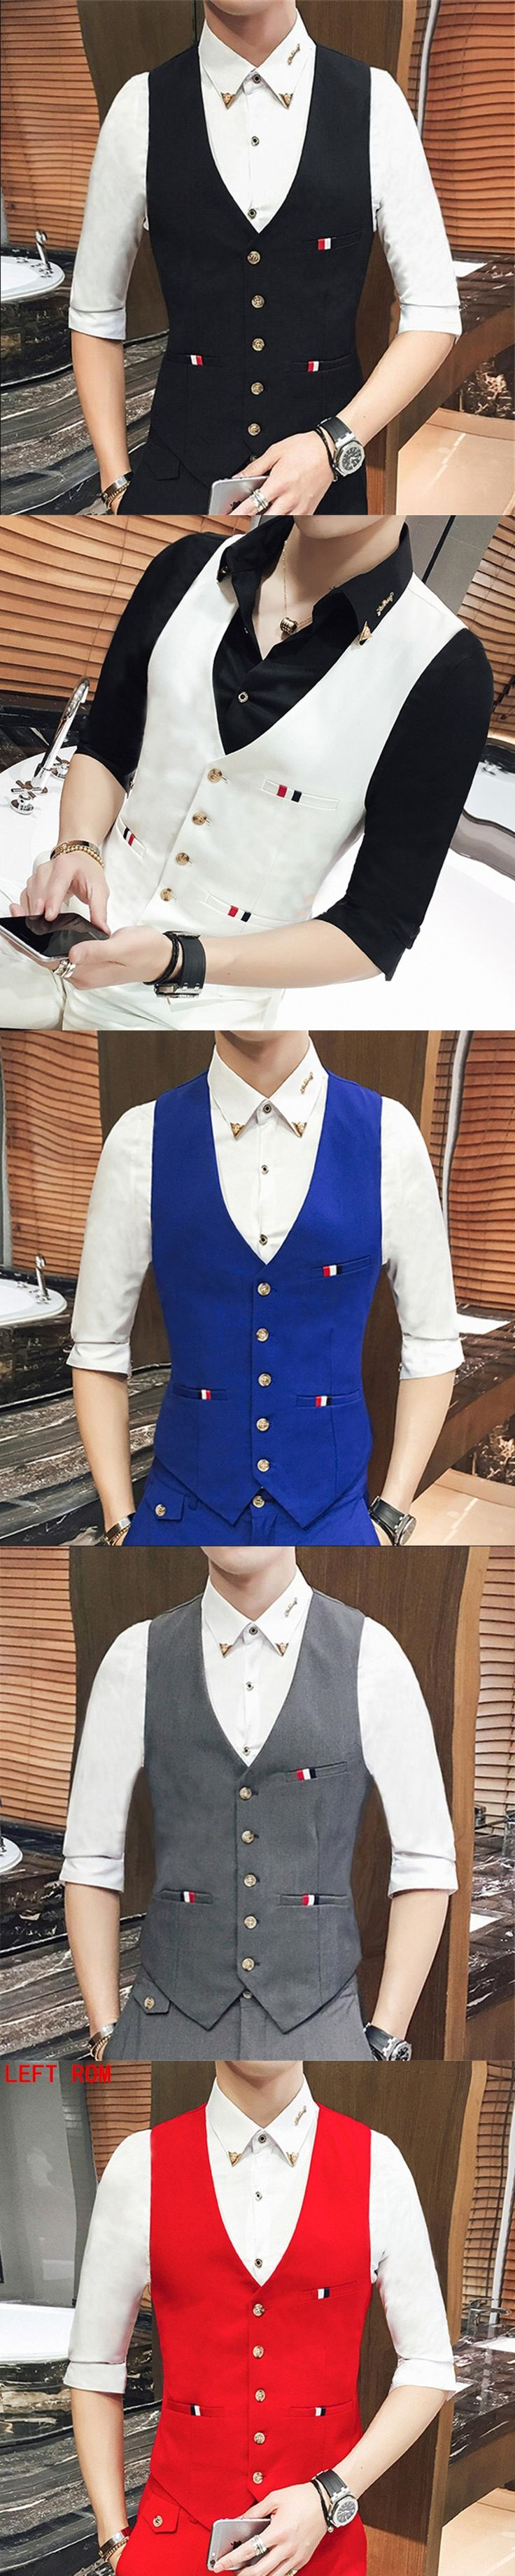 New Wedding Dress High-quality Goods Cotton men's Fashion Design  men's Business Casual Single-breasted Suits Vest Wedding Men